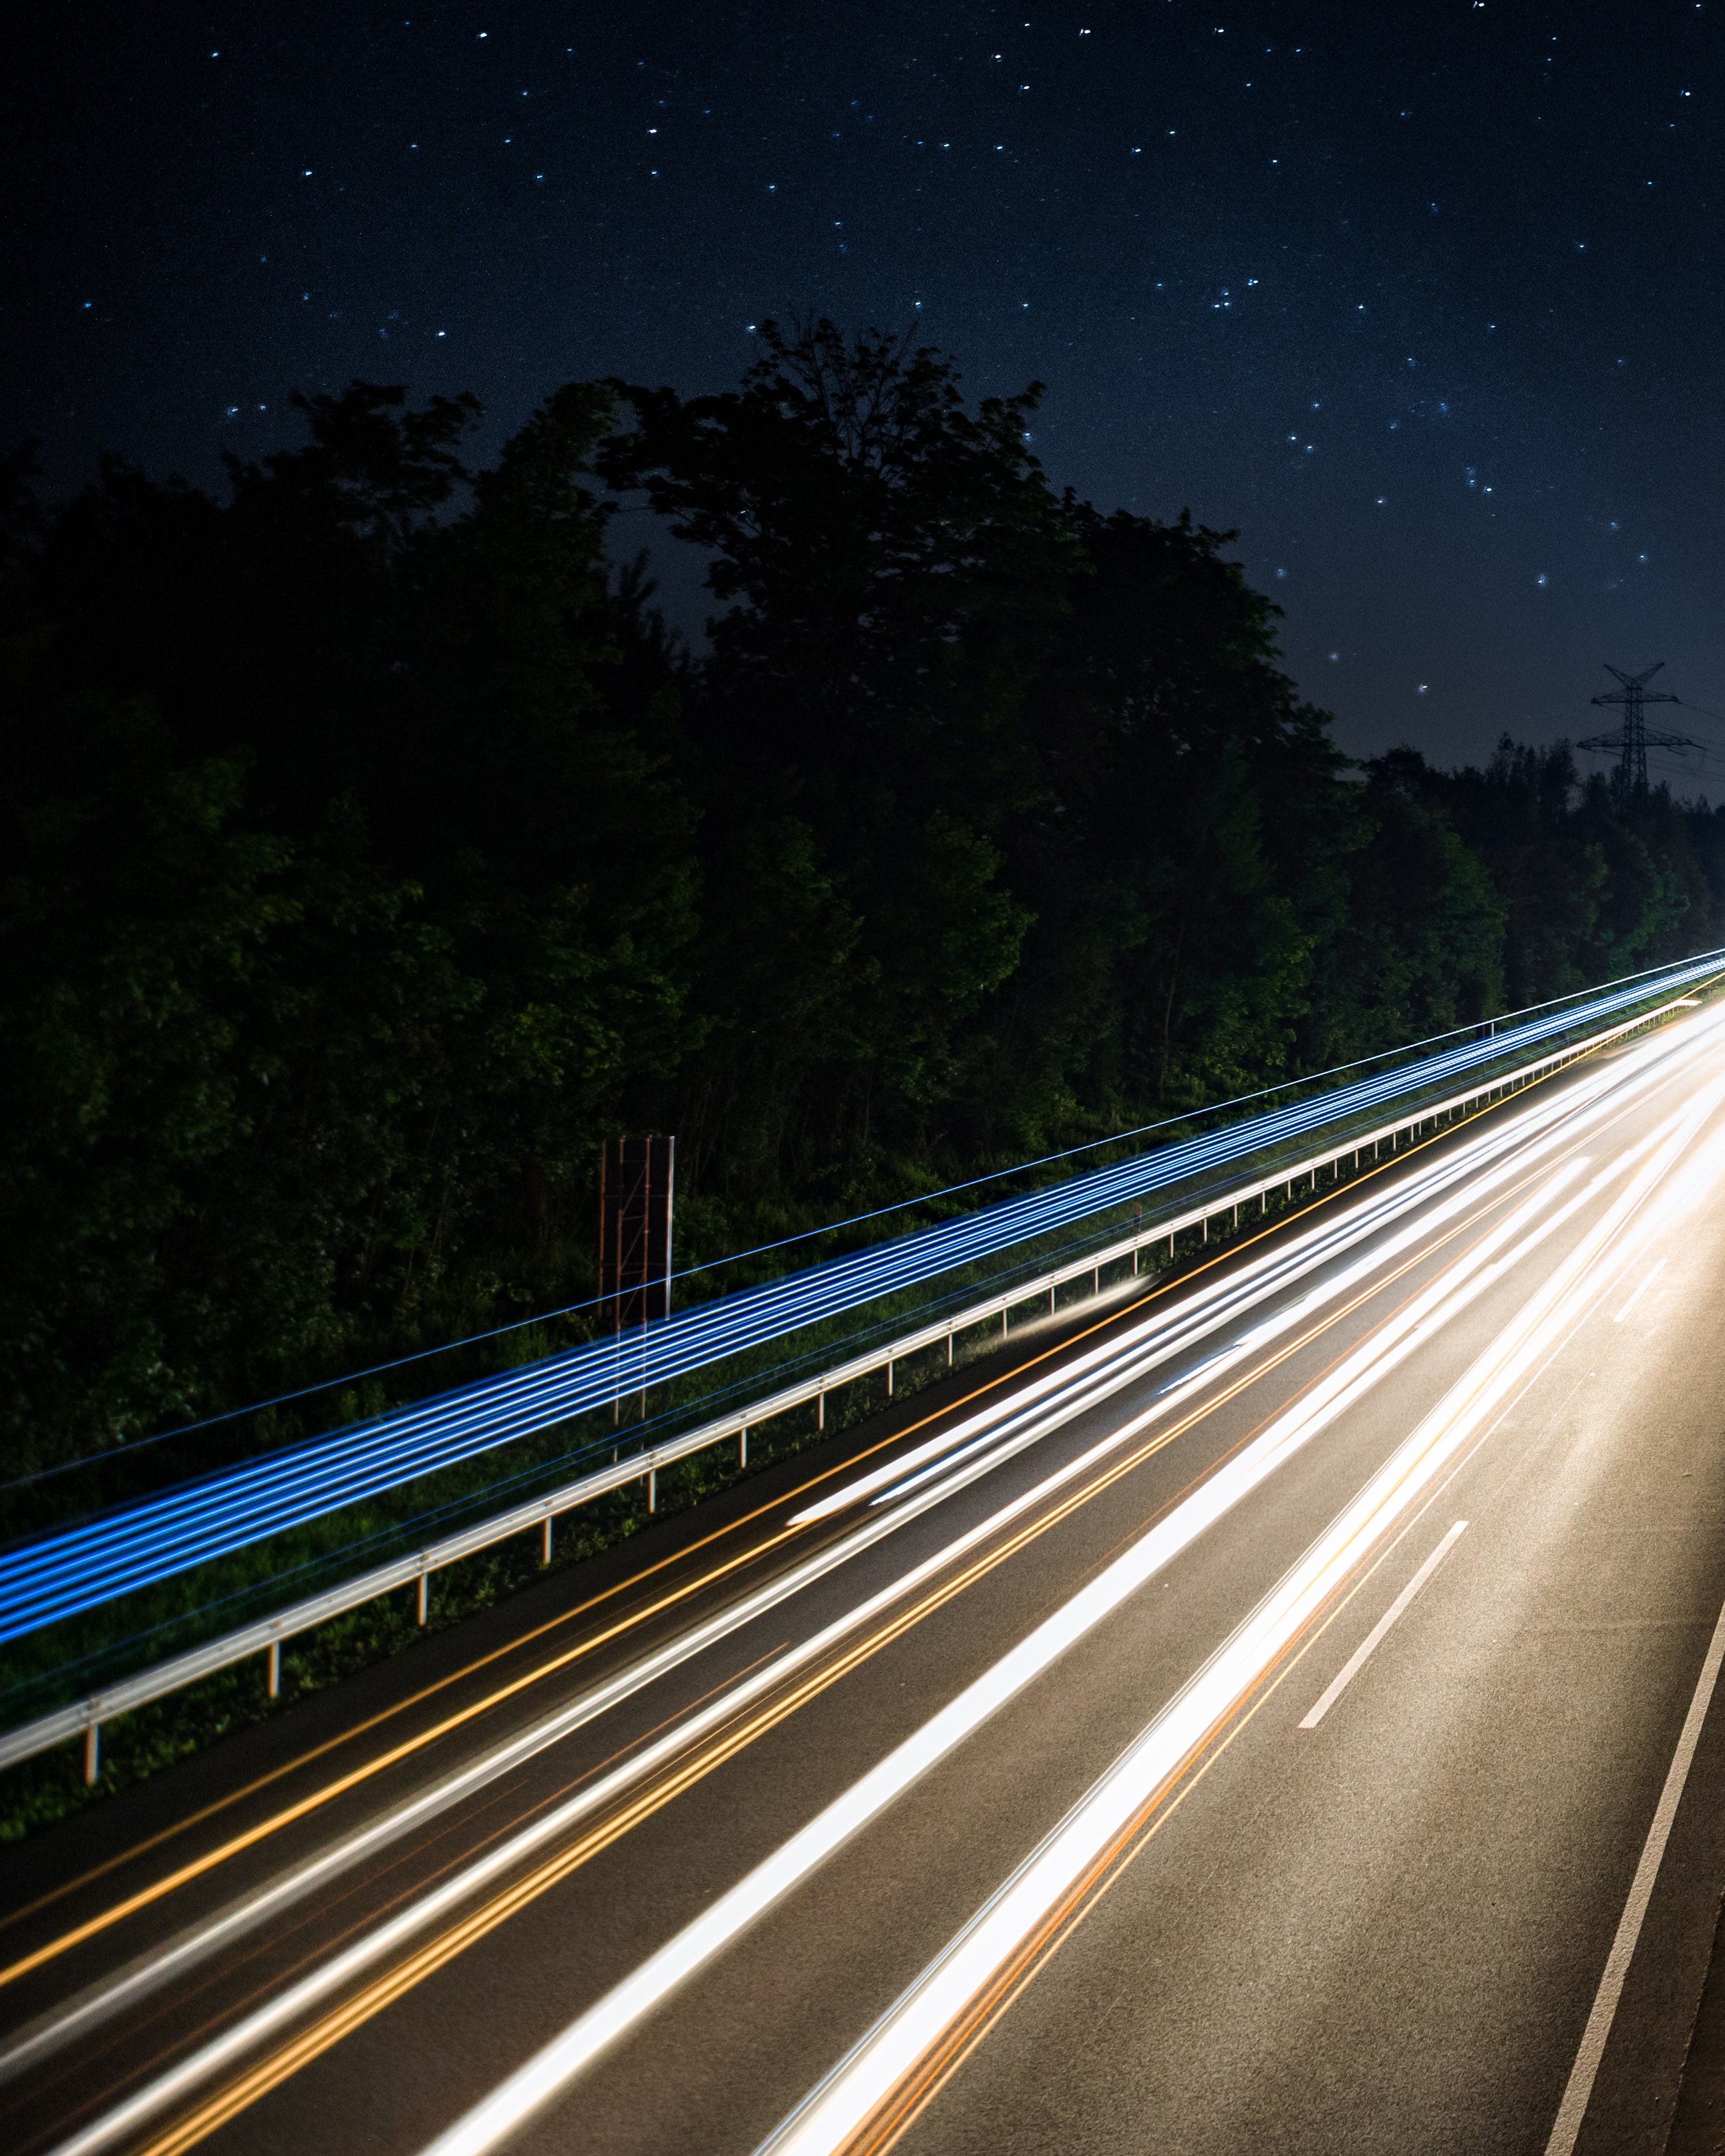 A fast-paced headlight trail image displaying speedy road movement at night